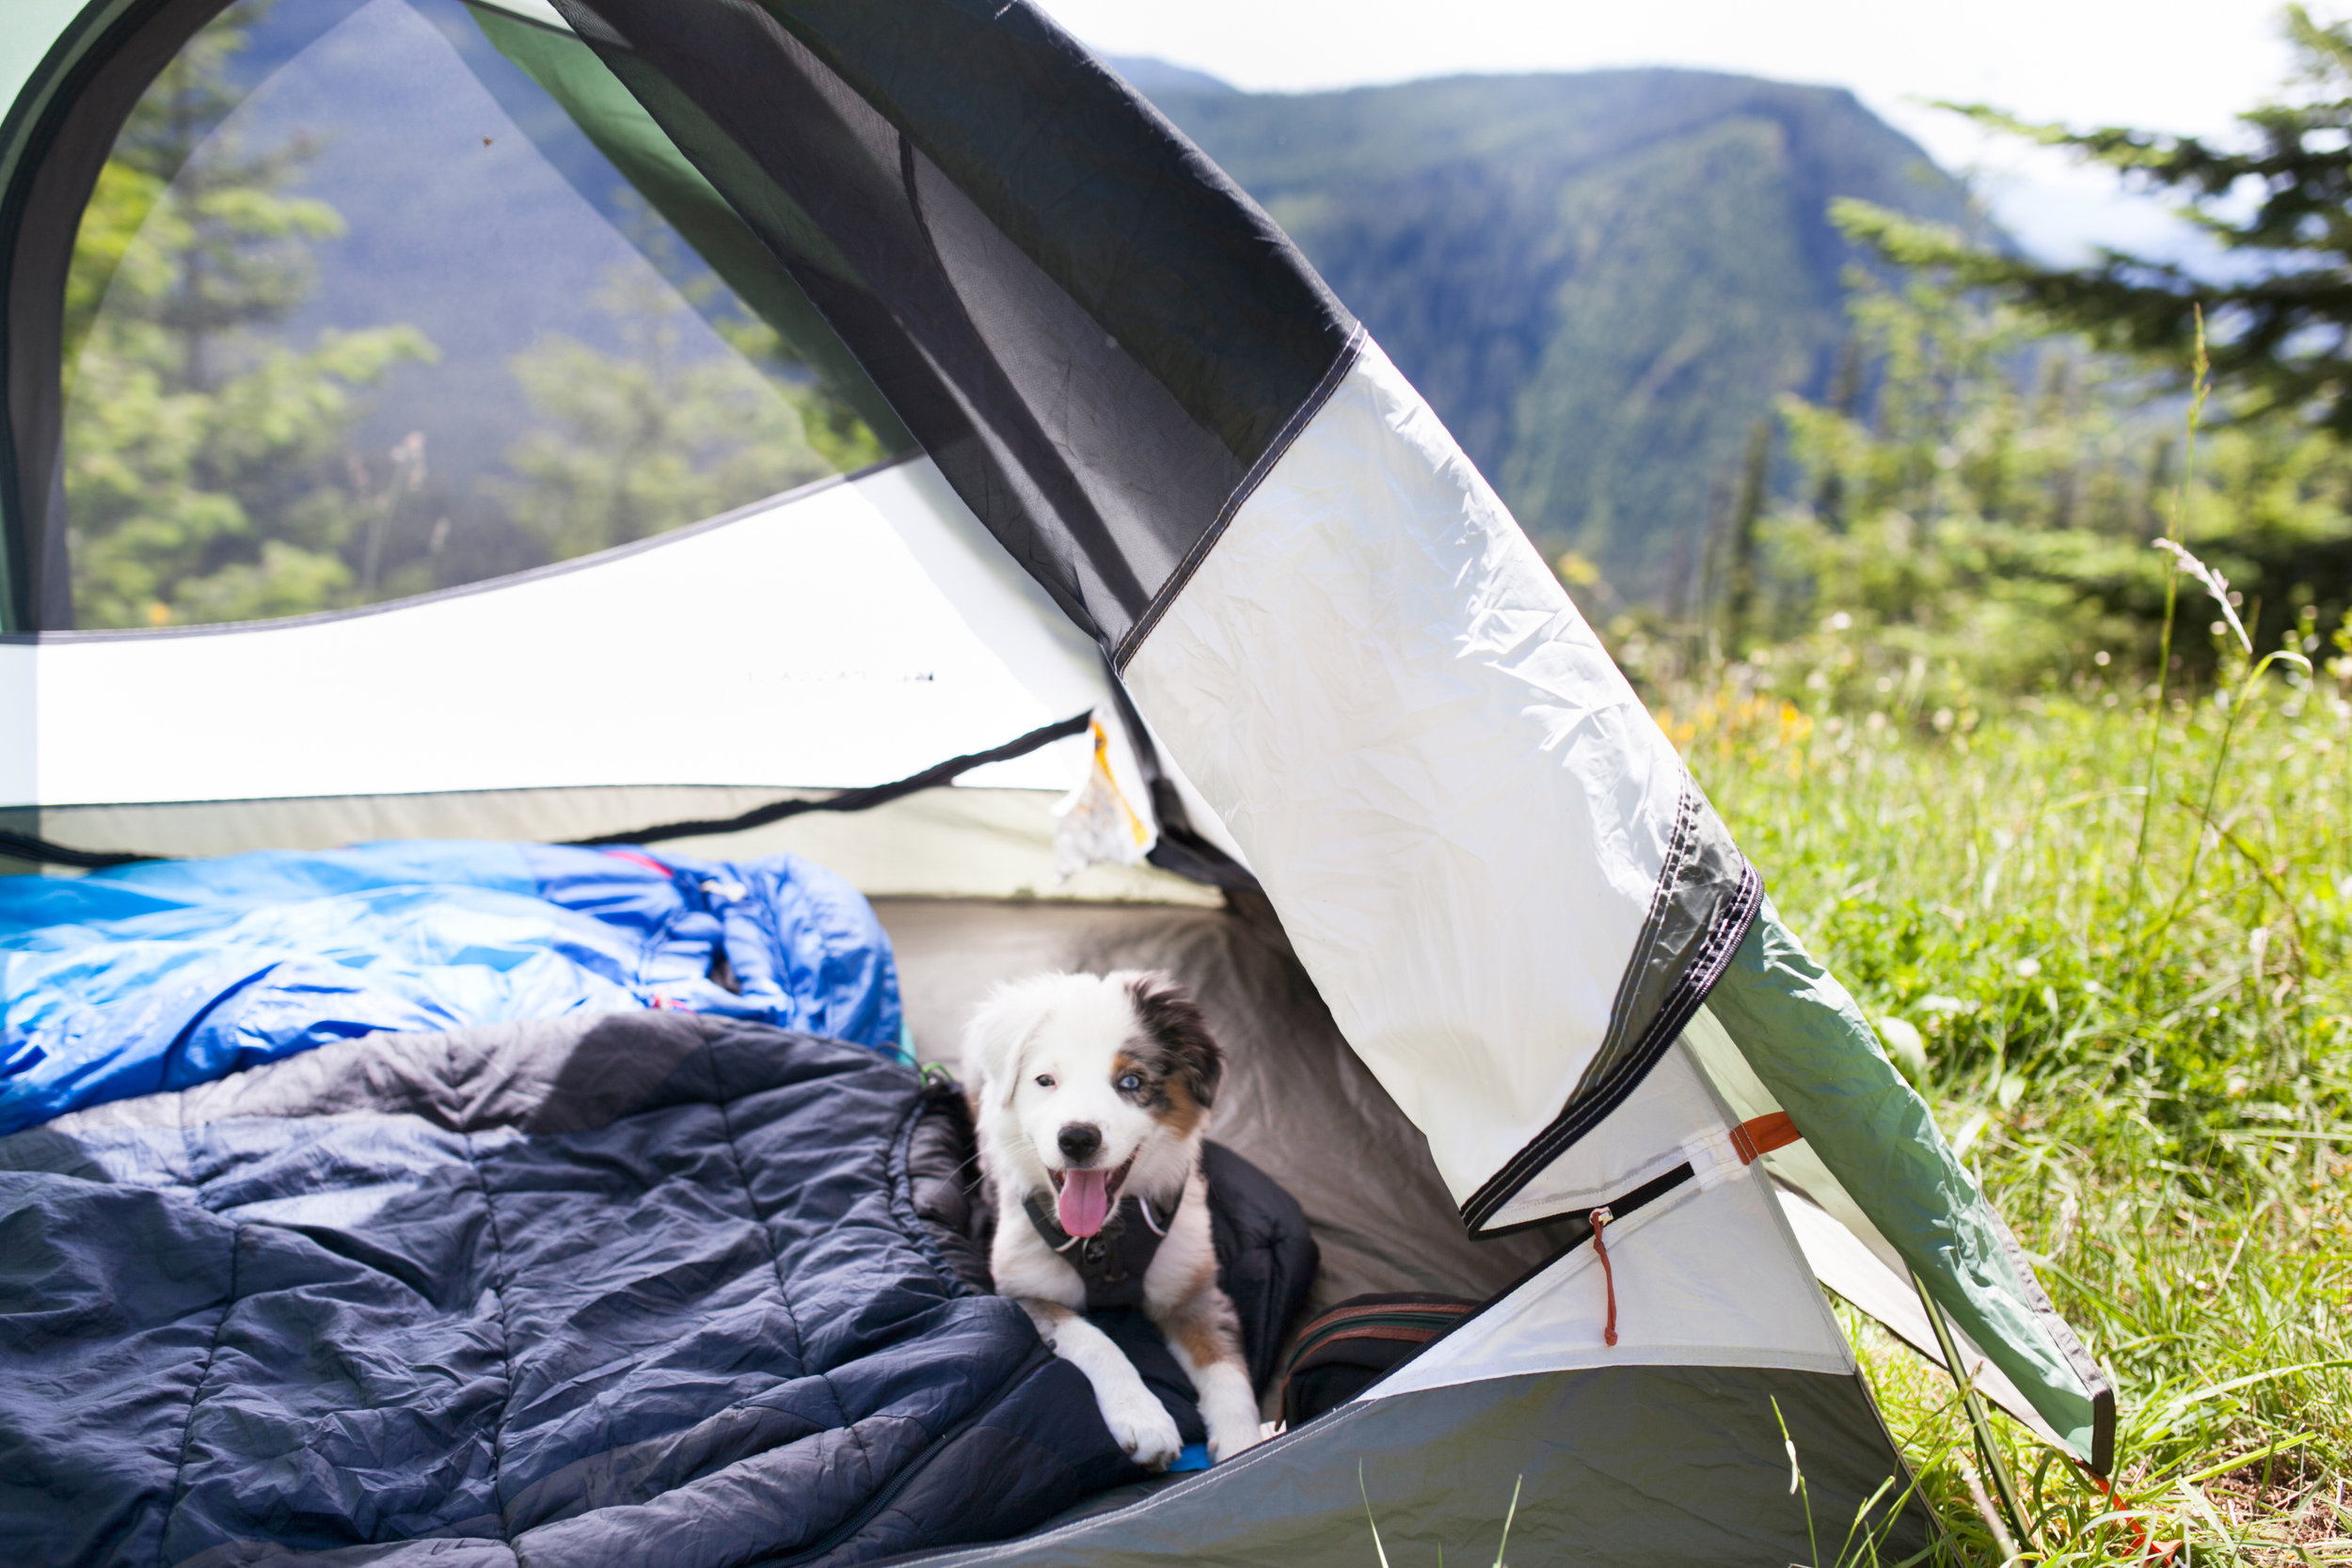 078Travel_Adventure_Outdoor_Photography_Outlive_Creative_WASHINGTON_St. Helens_Dog_Tent_Camping.jpg